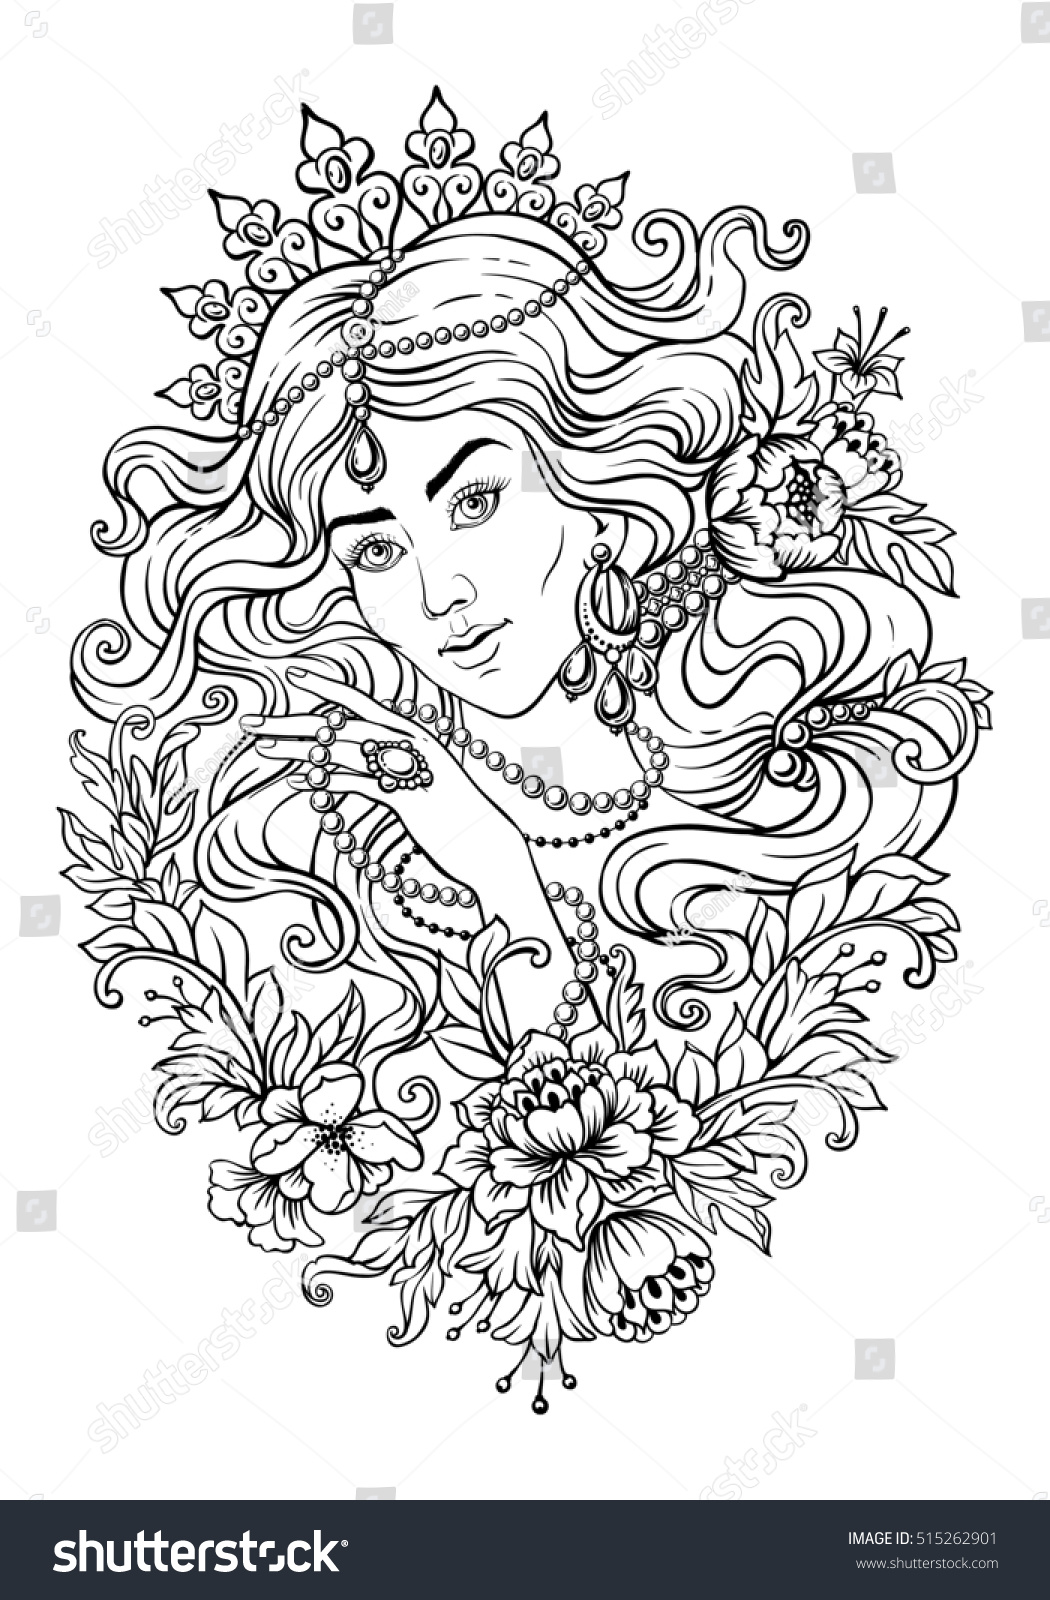 Free Coloring Pages For Adults Beautiful Mother. Free ...